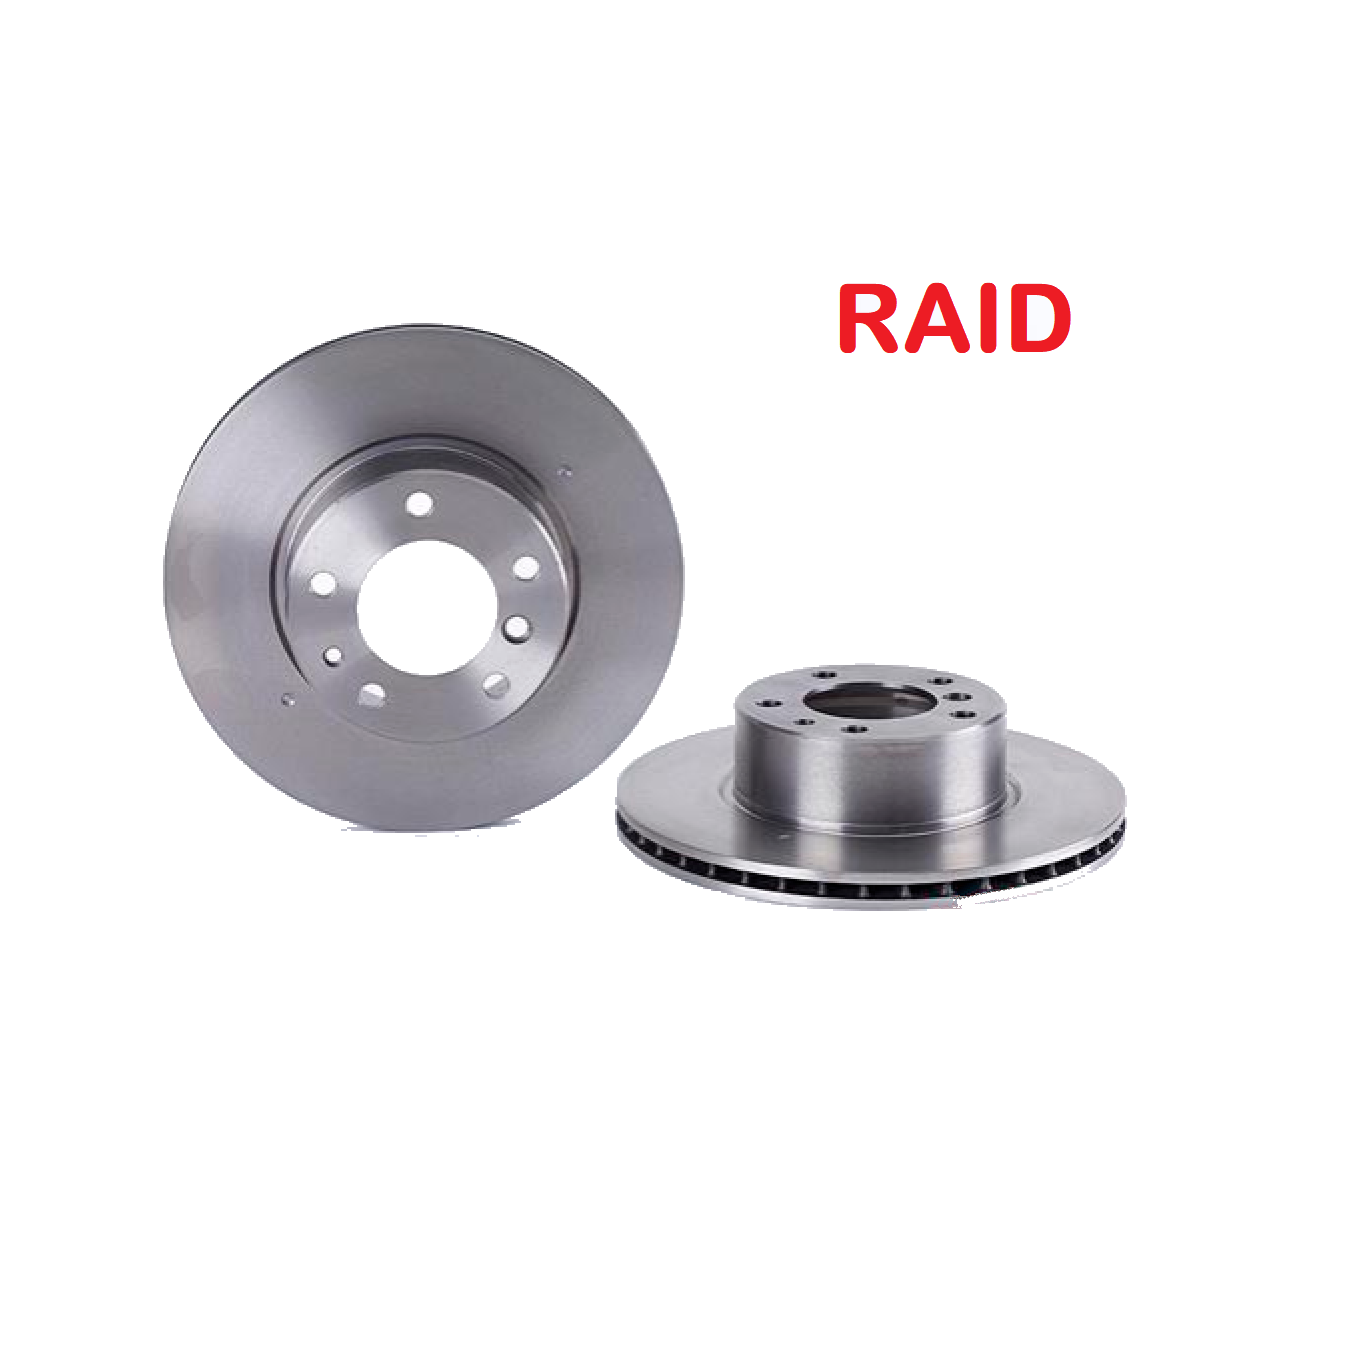 PAIR OF FRONT BRAKE DISCS BMW 5 - 7 RAID FOR 34111158040